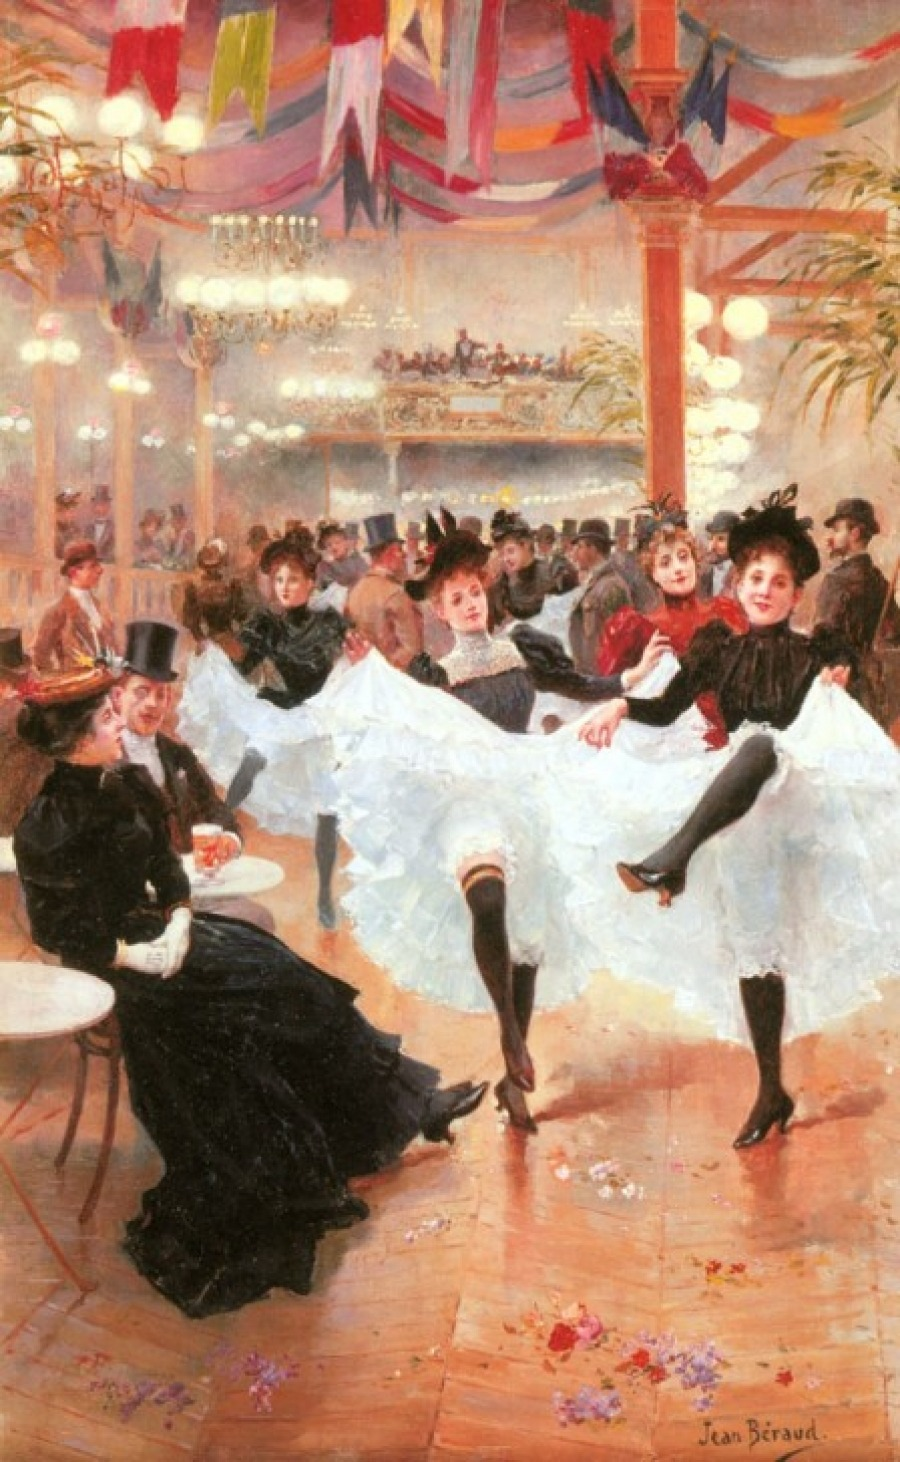 books0977:  Jeune Le Cafe de Paris. Jean Béraud (French, Impressionism, 1849–1935). Oil on canvas.  Béraud had an exceptional eye for detail, enhanced by the advent of photography. This vision imbued his portrayals of daily Parisian life with subtlety and elegance. He remained in his beloved, flamboyant Belle Époque city while his Impressionist contemporaries moved to the country. Béraud would often sequester himself in a taxicab to paint candid images of unsuspecting passersby and mundane, everyday activities.